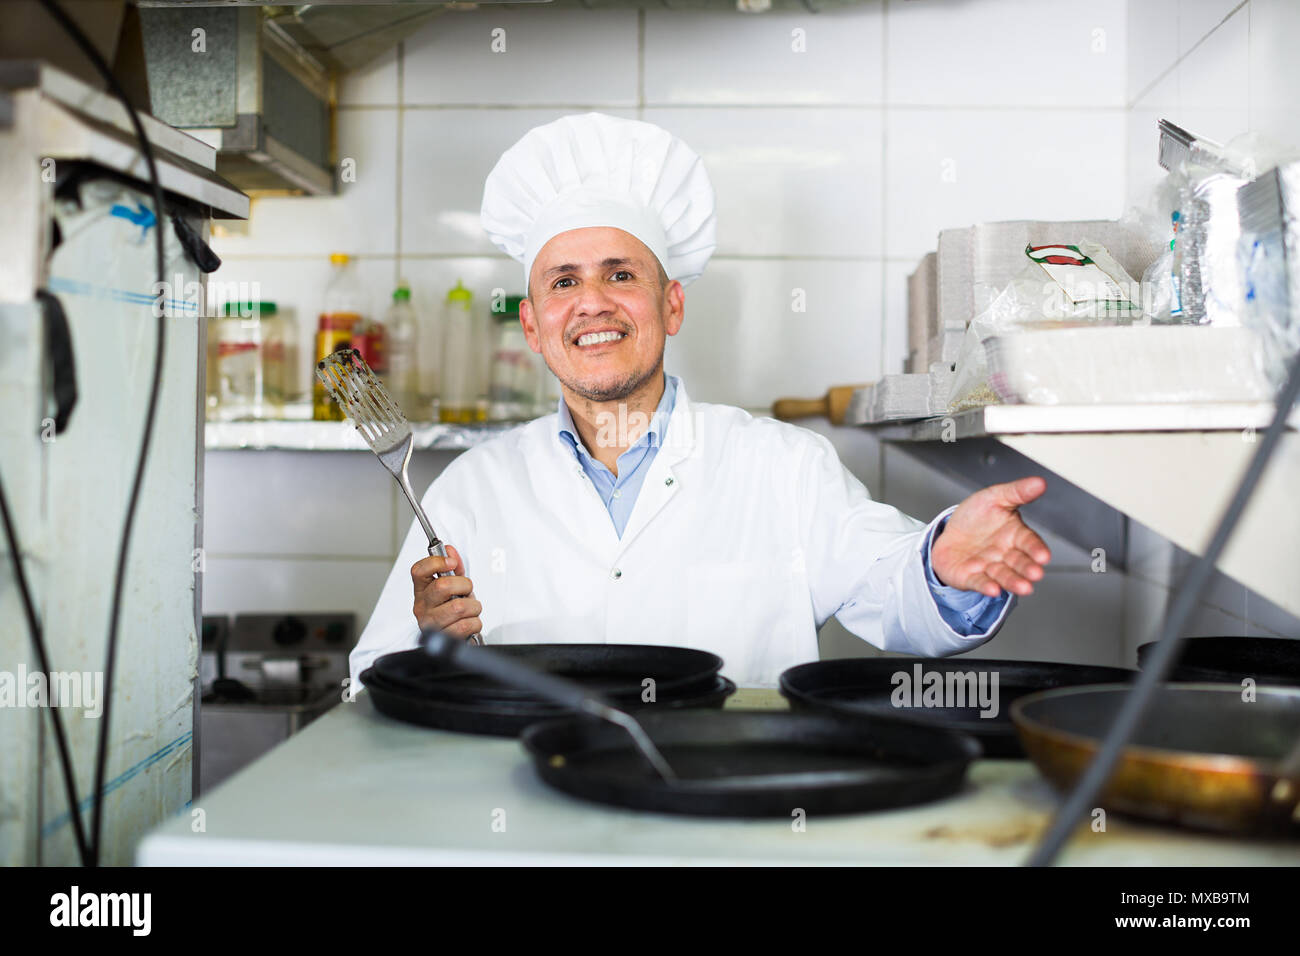 Man professional cook wearing uniform sitting on kitchen with frying ...